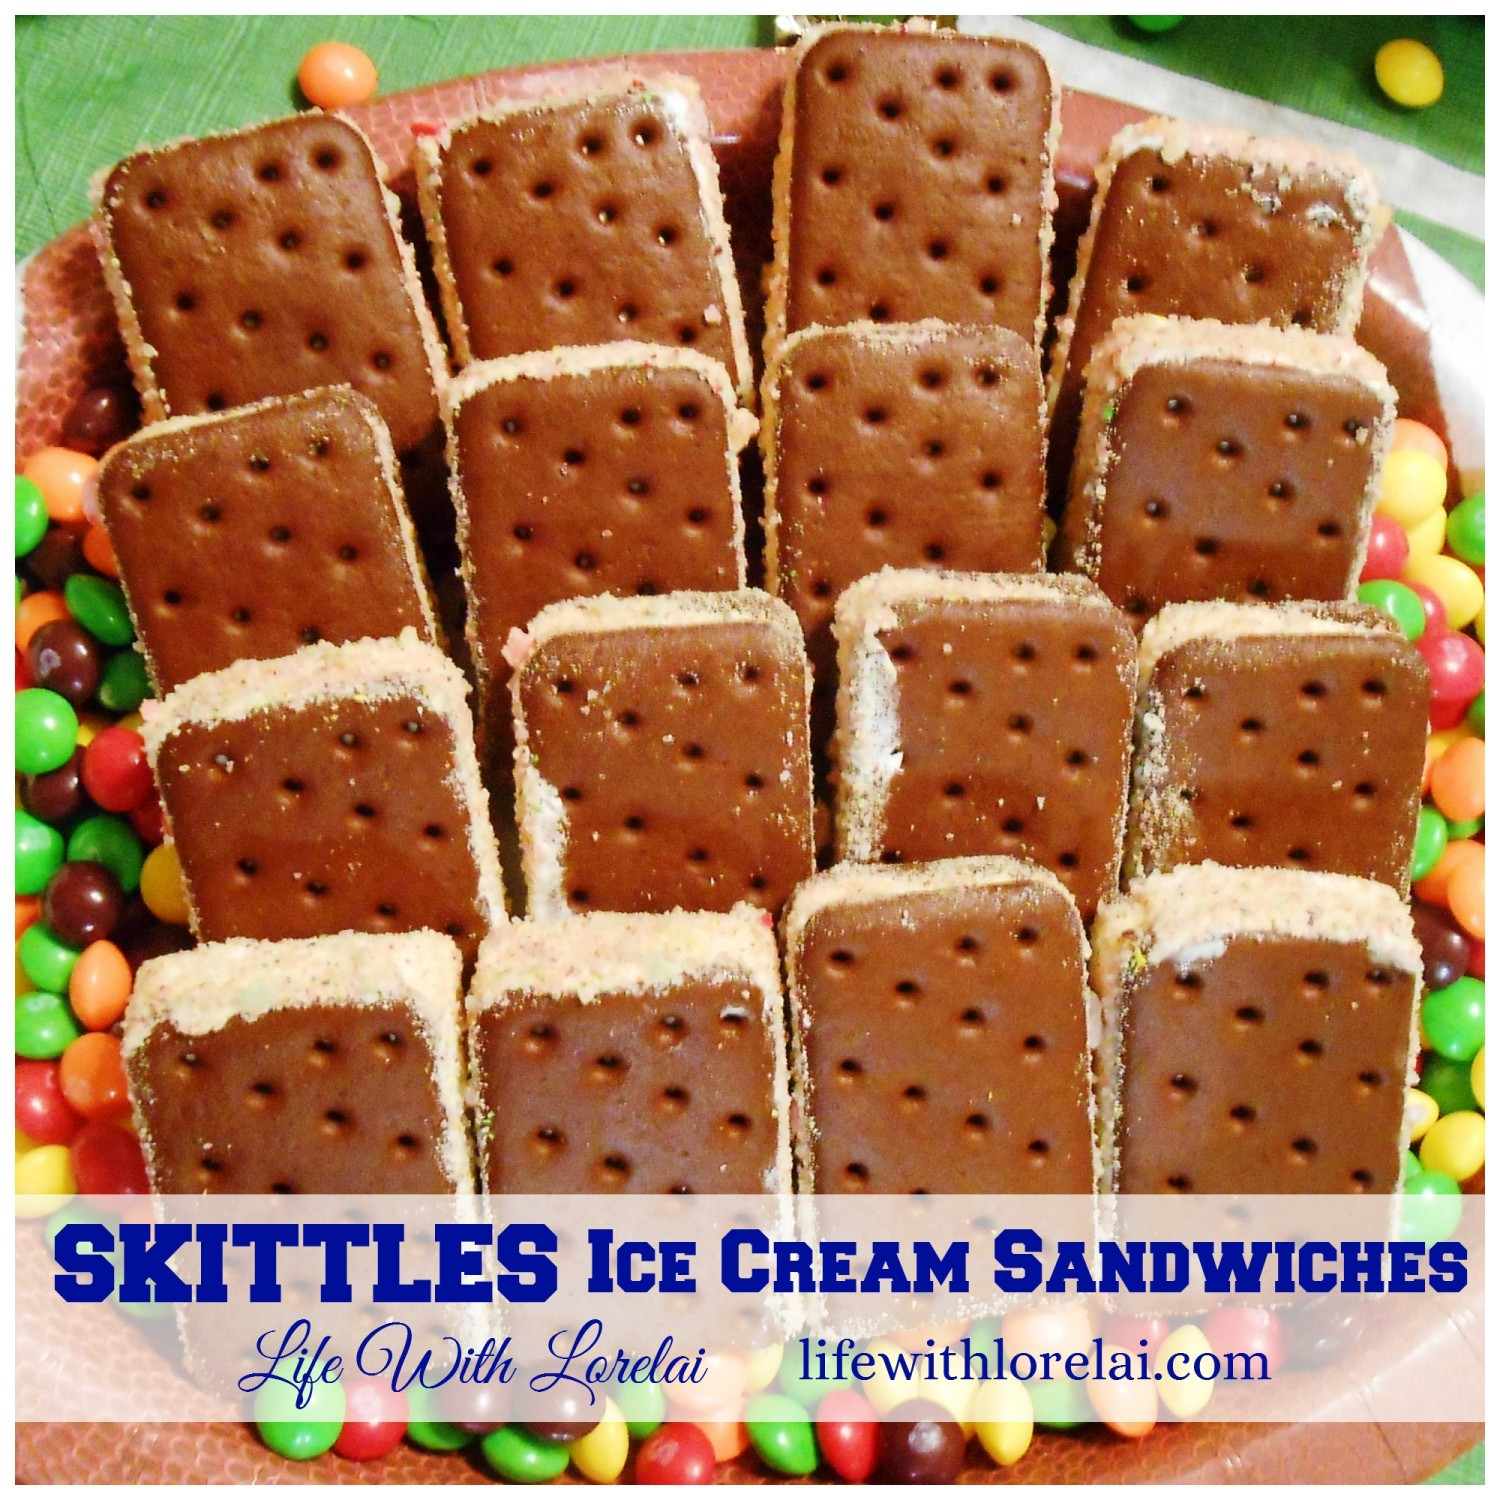 Skittles Ice Cream Sandwiches - A delicious treat with a fruity punch!